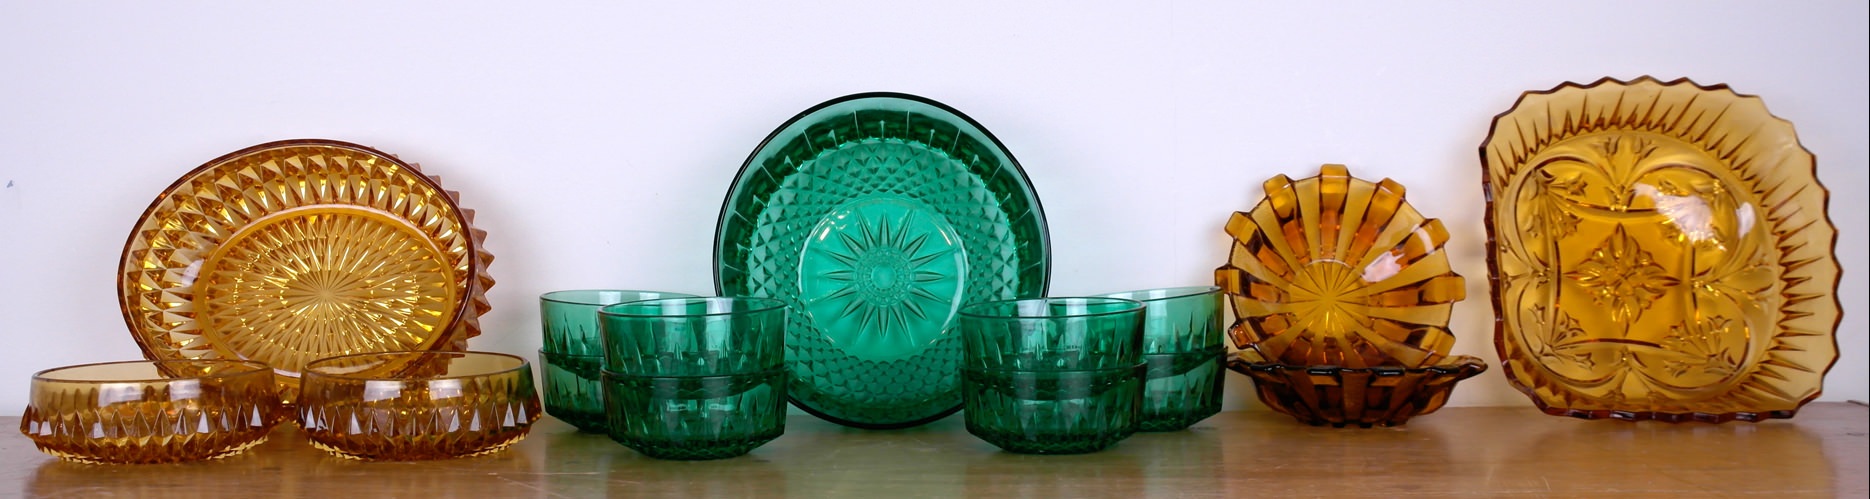 Vintagle glass desert bowls and serving bowls